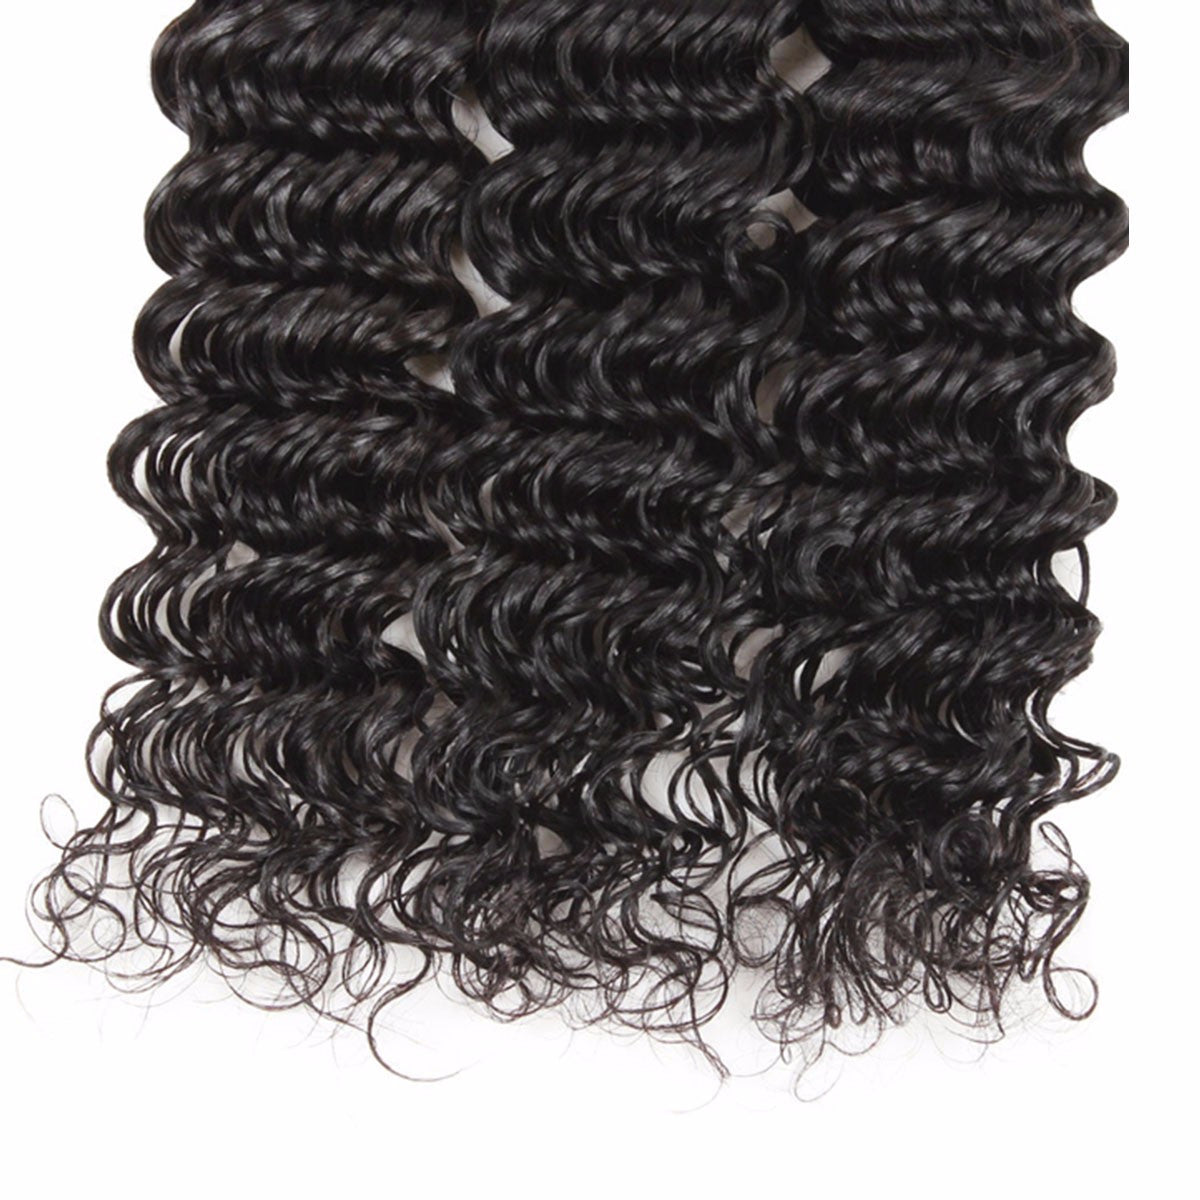 Indian Deep Wave Hair 3 Bundles 100% Human Hair Weave Non Remy Natural Color - Jeybeauty